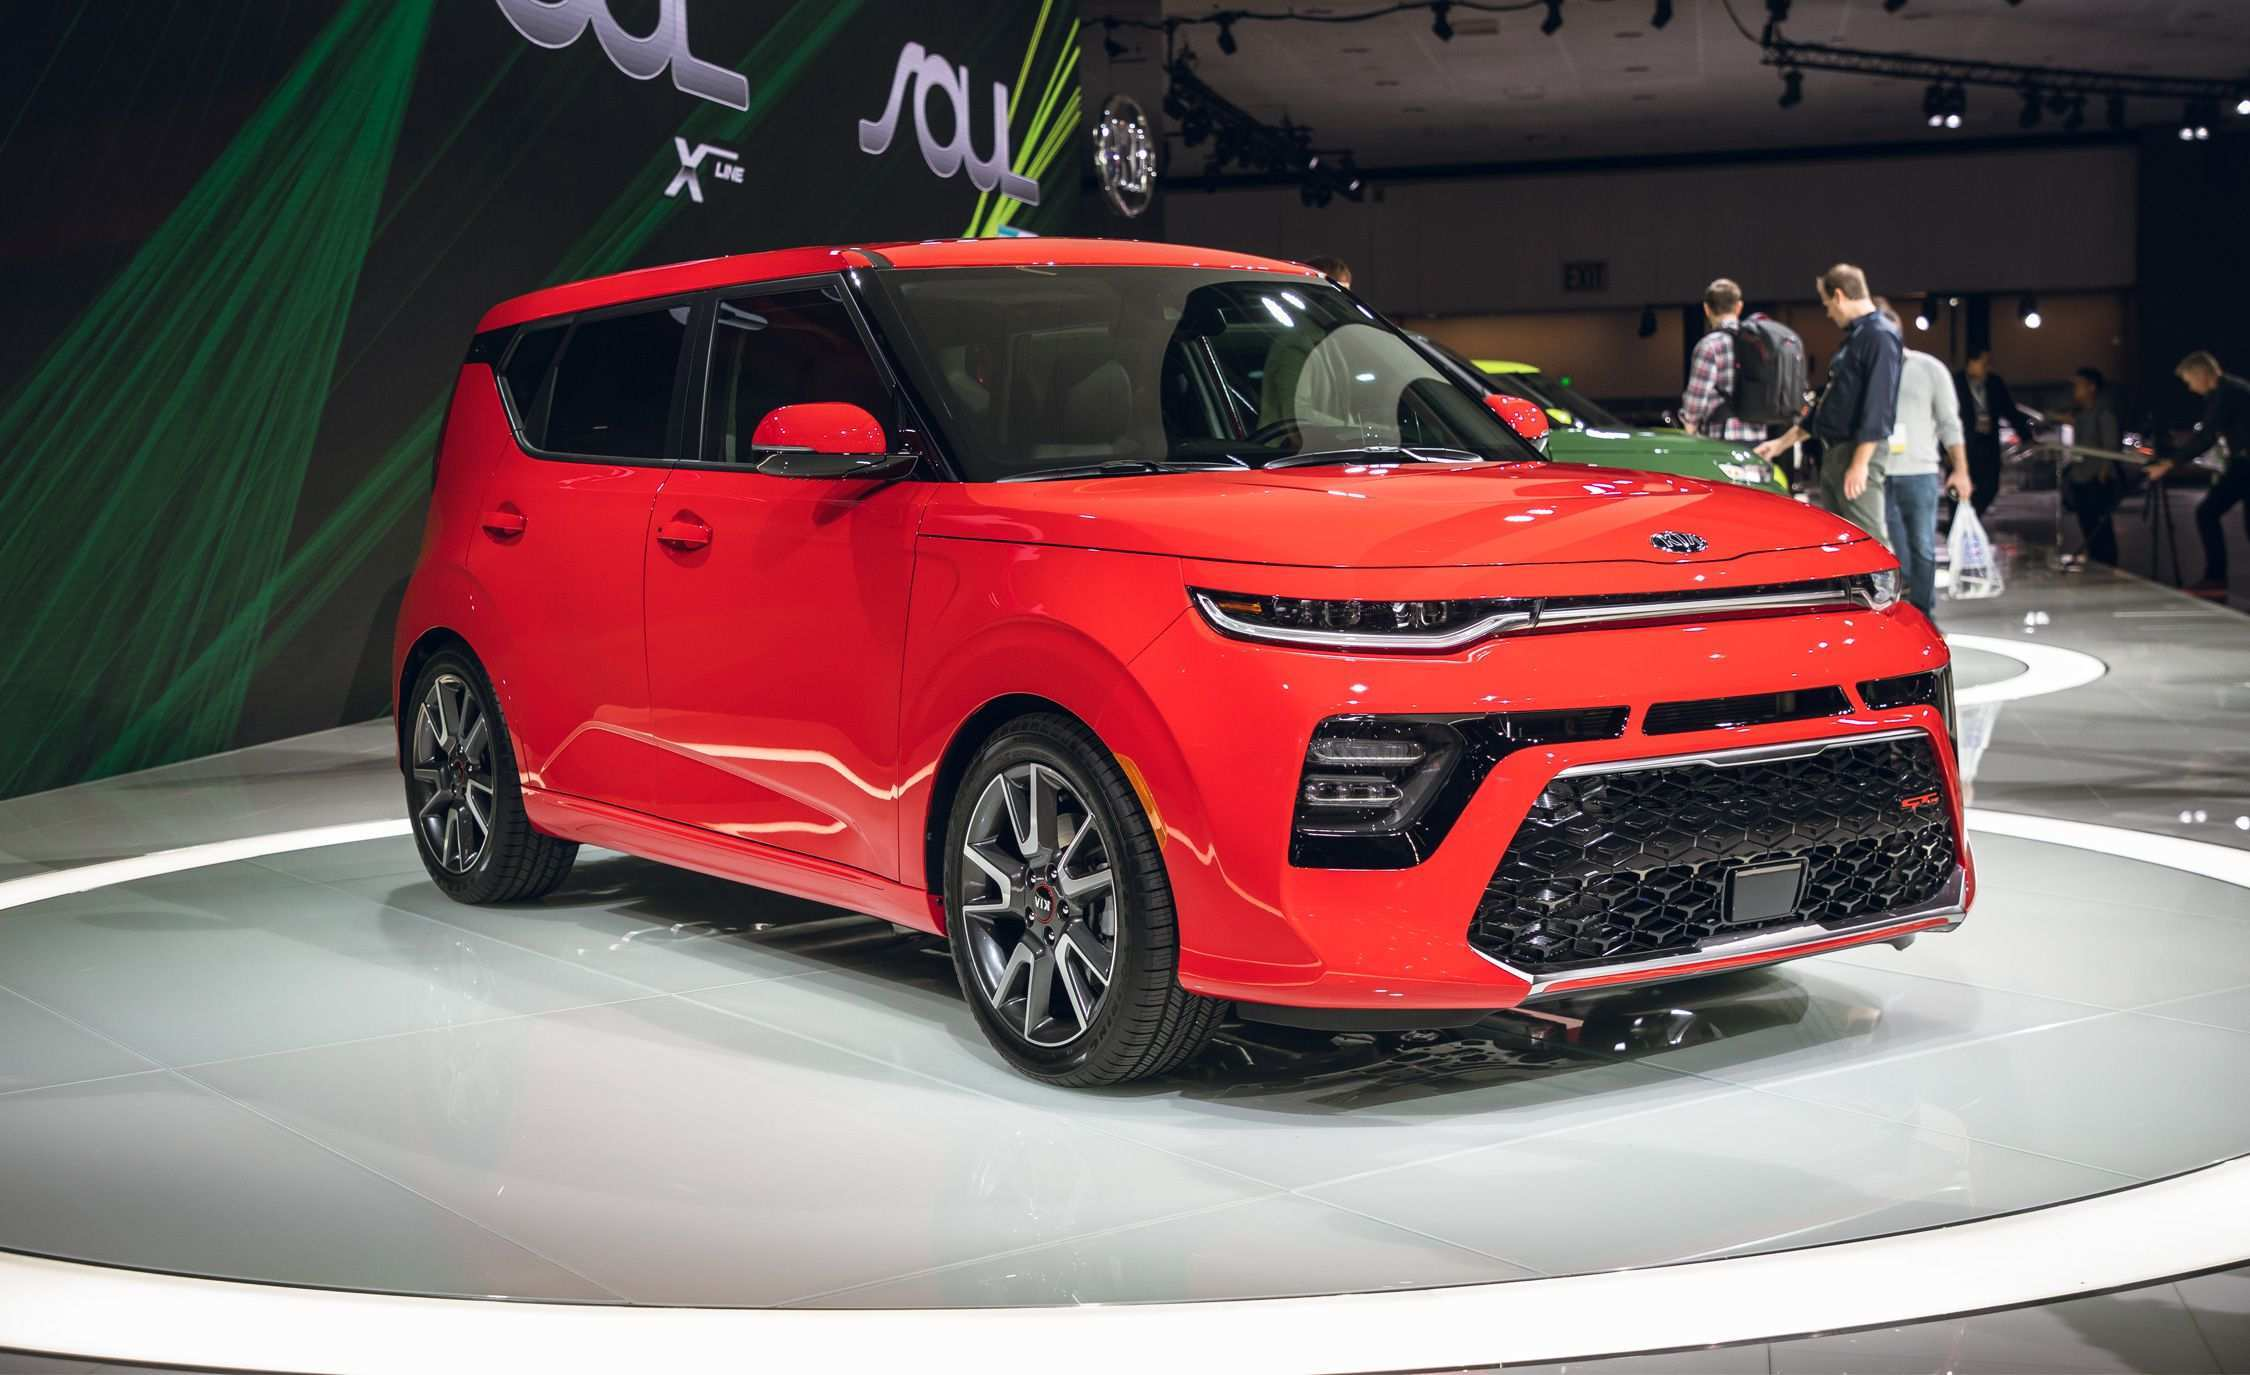 71 All New Kia Soul 2020 New Concept New Review with Kia Soul 2020 New Concept